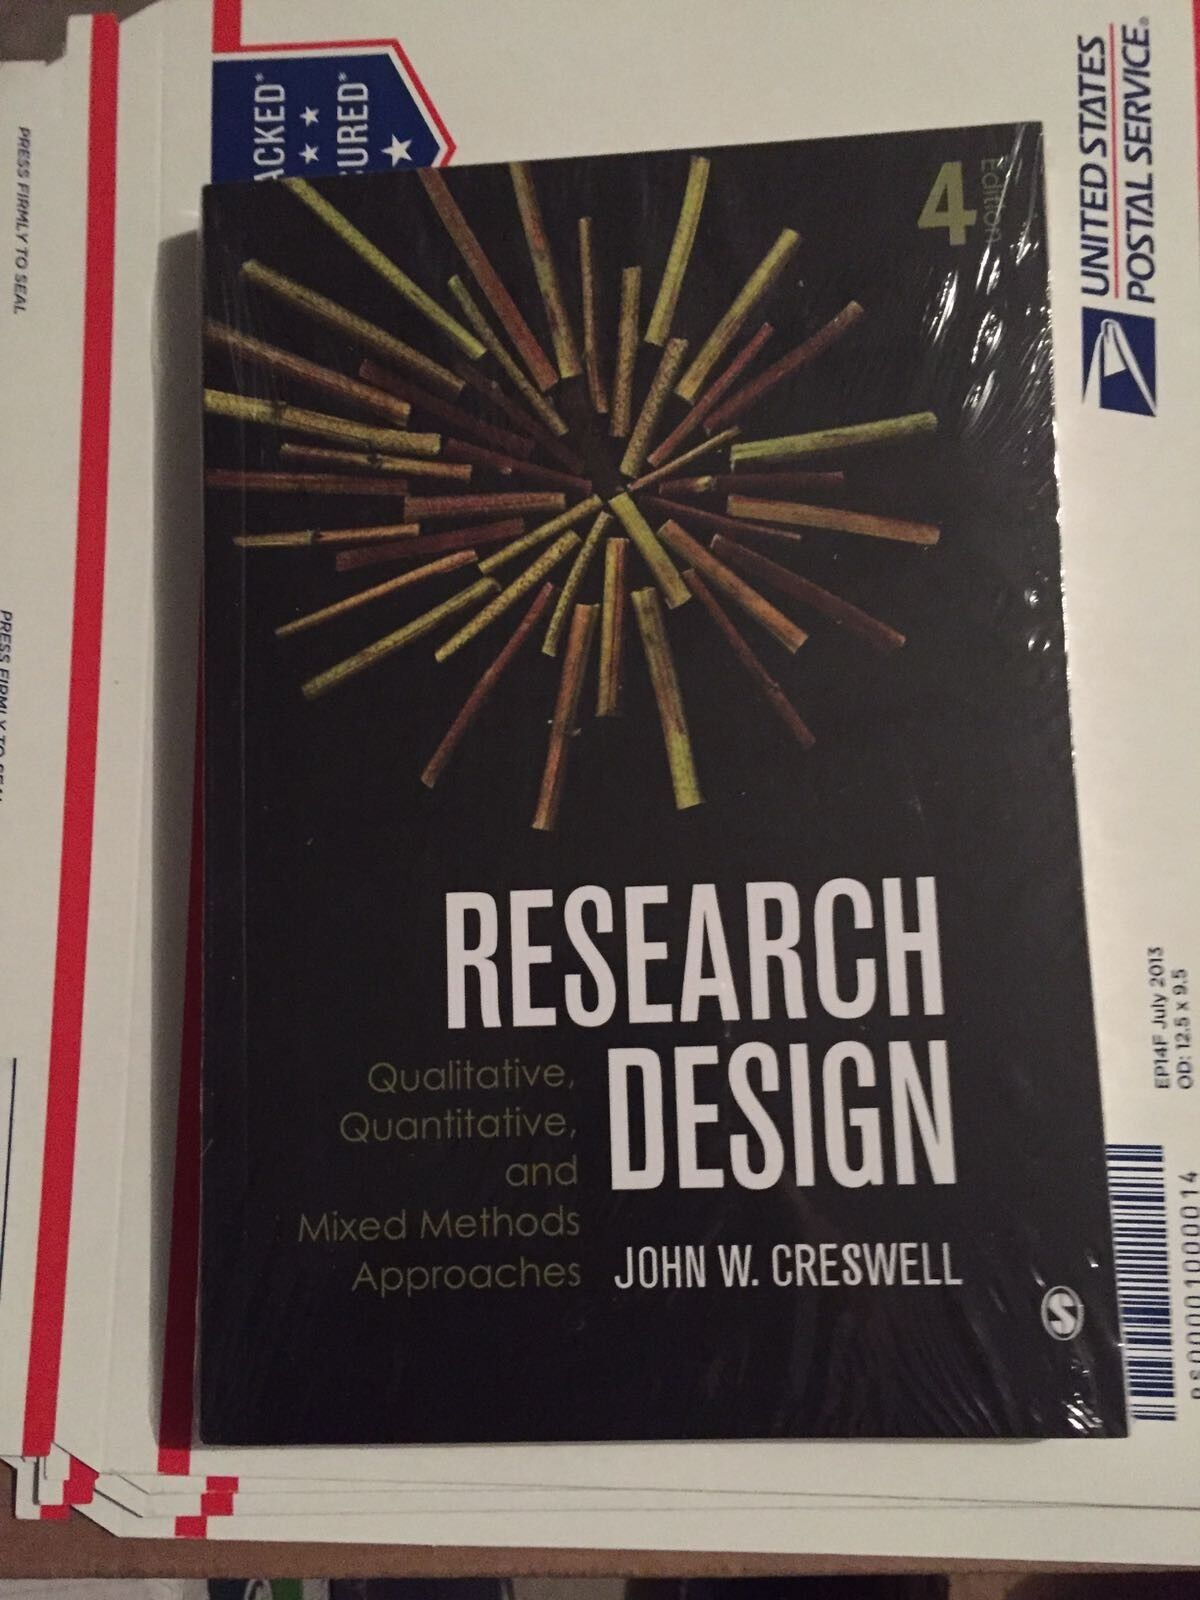 research design qualitative and quantitative approaches Combines both quantitative and qualitative methods (eg, open - and closed-ended questions, quantitative and qualitative data, etc) data can be collected simultaneously or sequentially depending upon design.